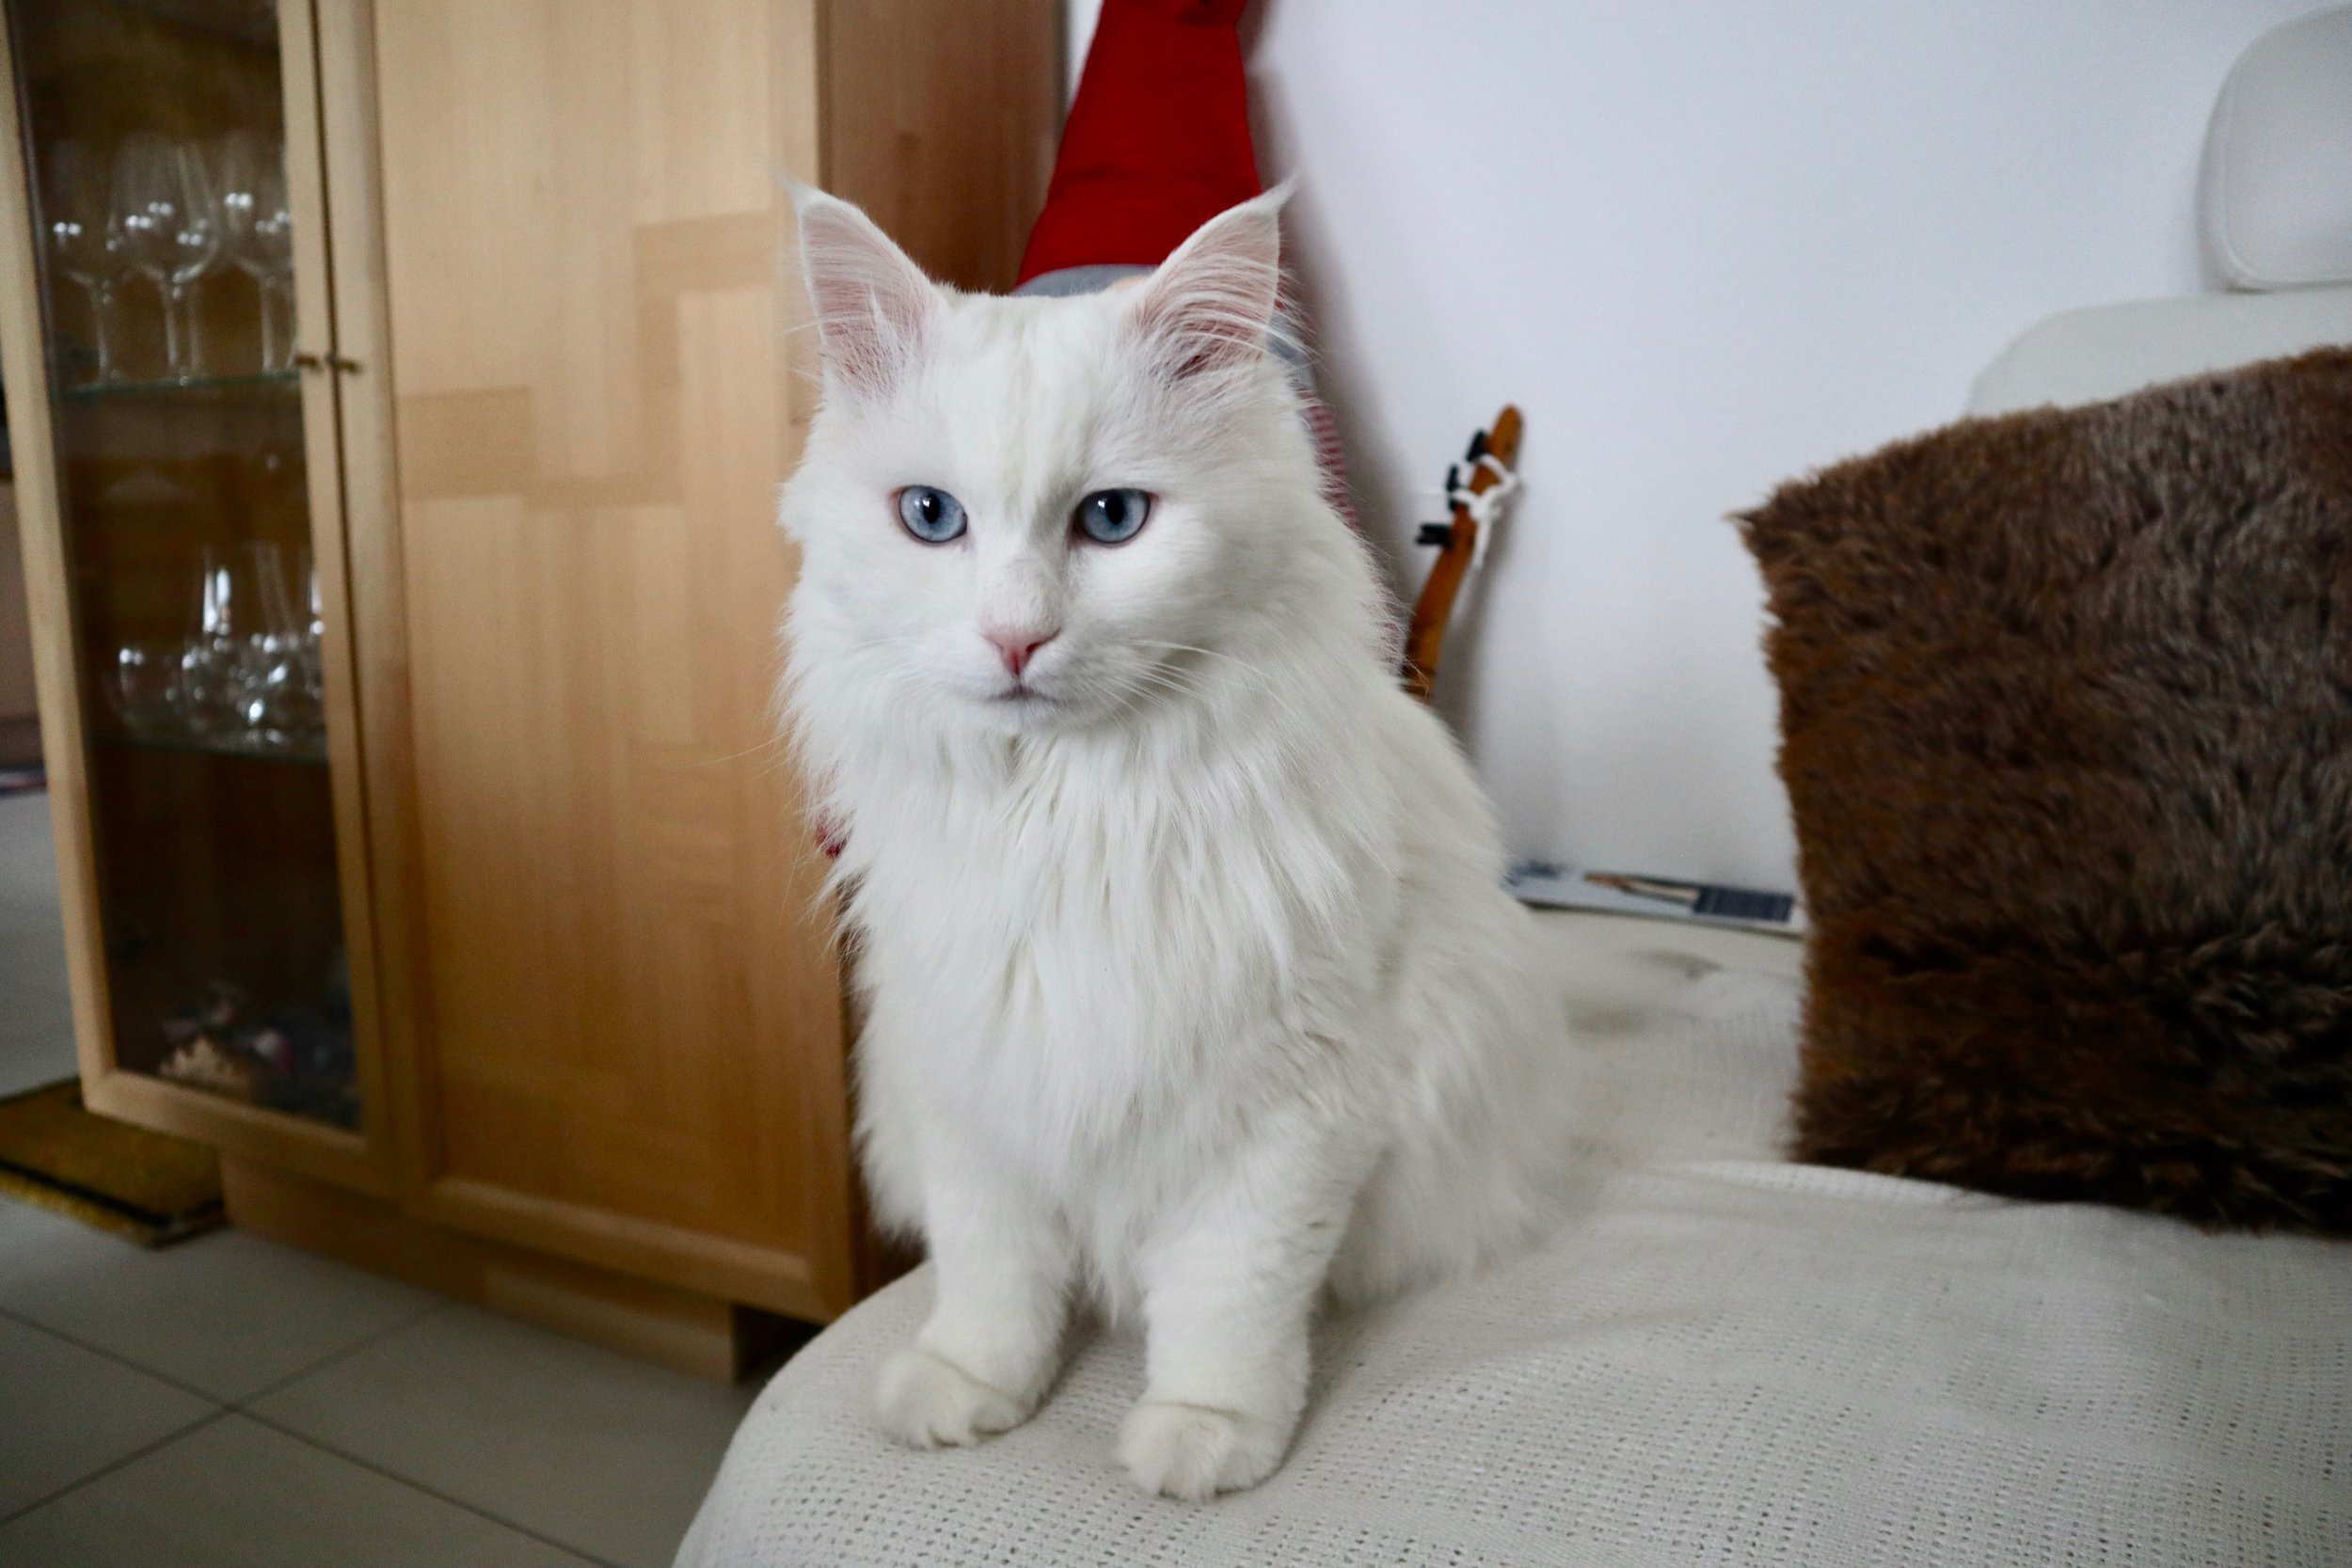 Toby the cat - now safe and sound in Frankfurt, Germany with his owners Nabila and Manfred.